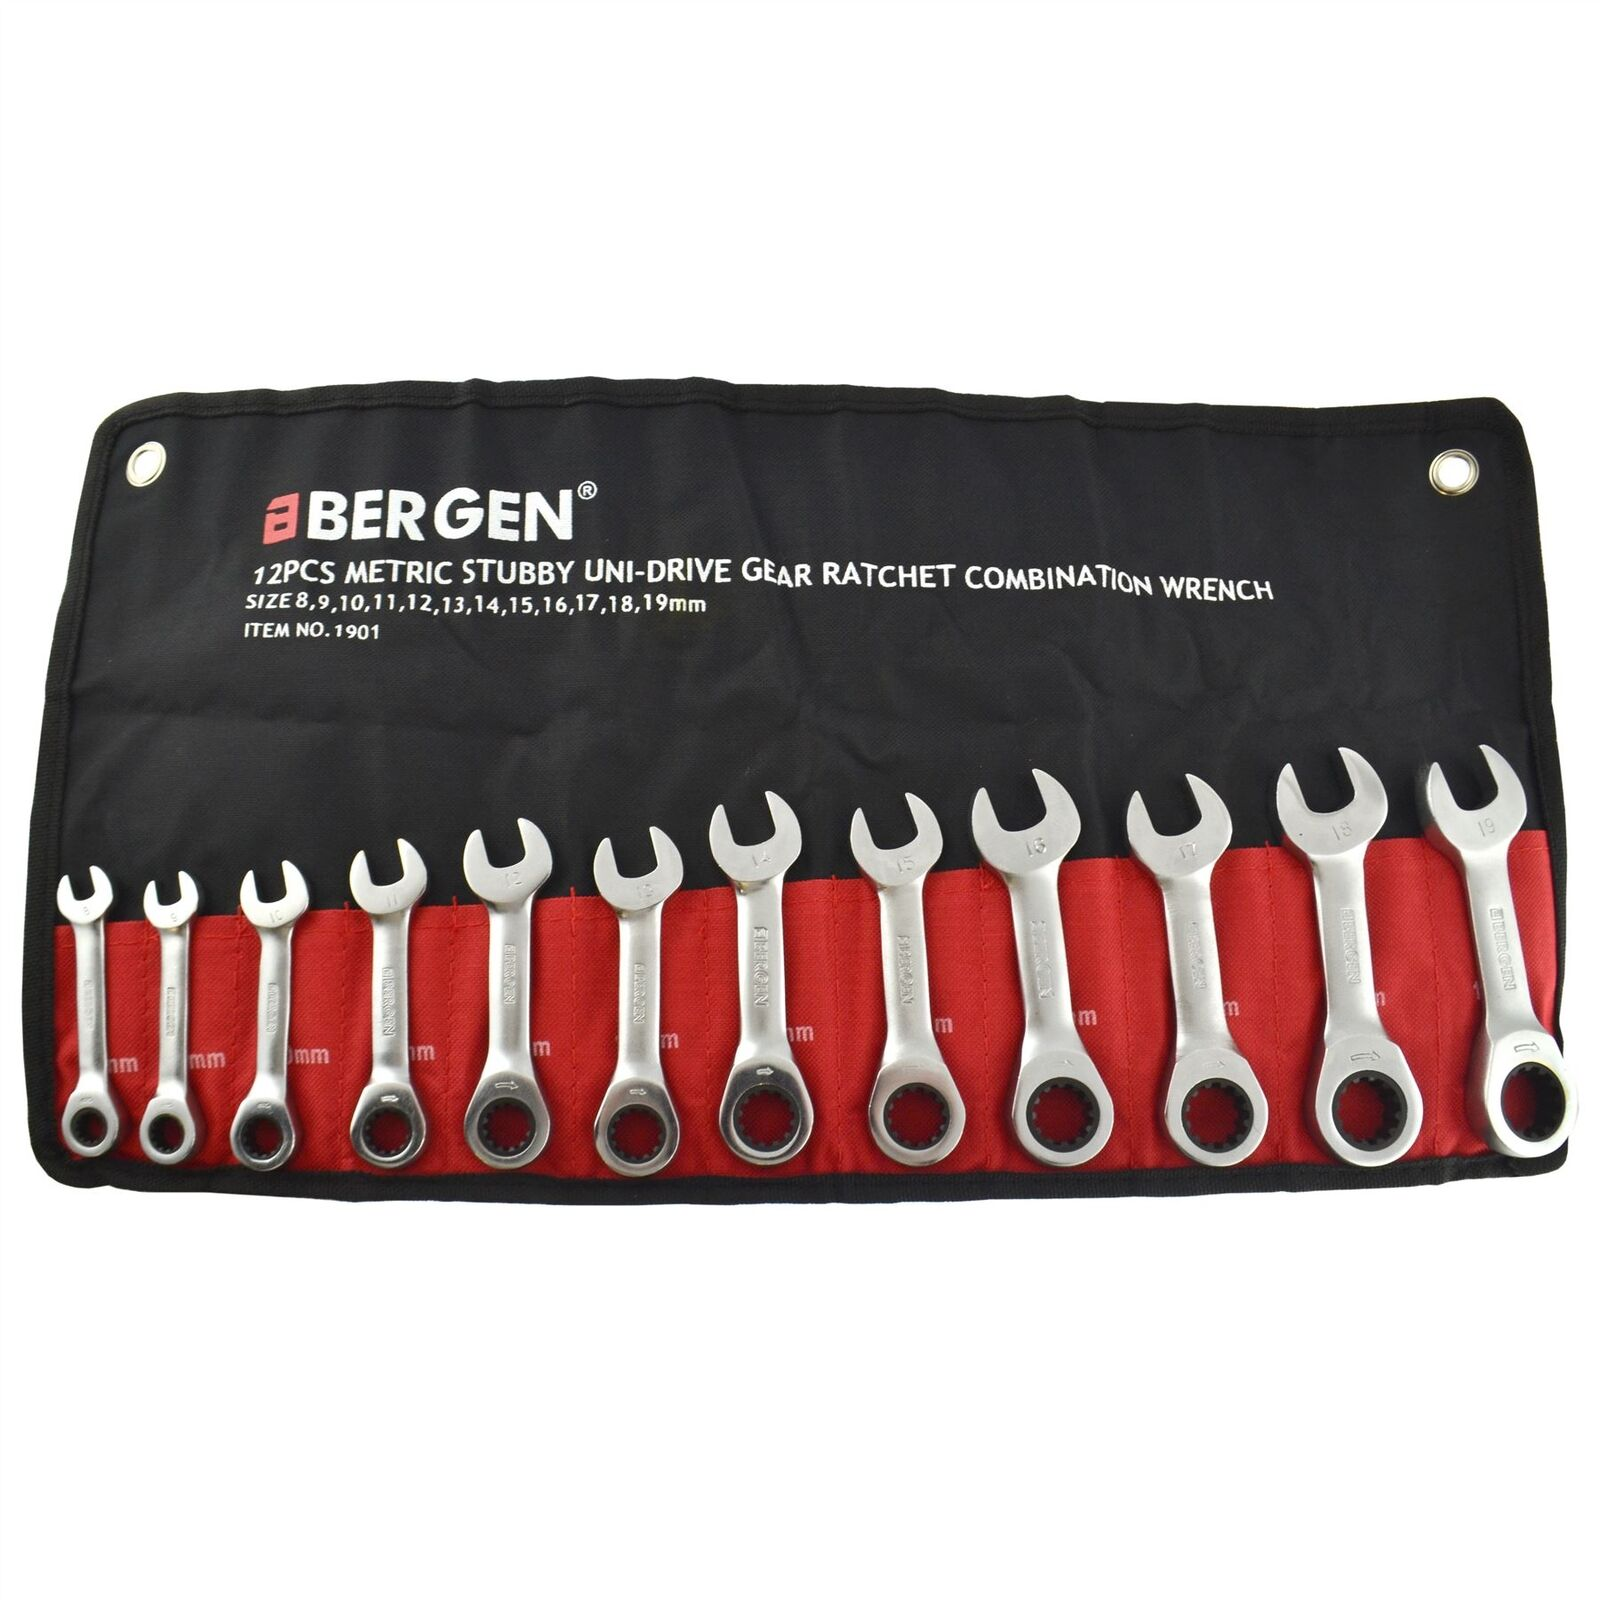 12pc Stubby Metric MM Ratchet Combination Spanner Wrench Set 8mm - 19mm